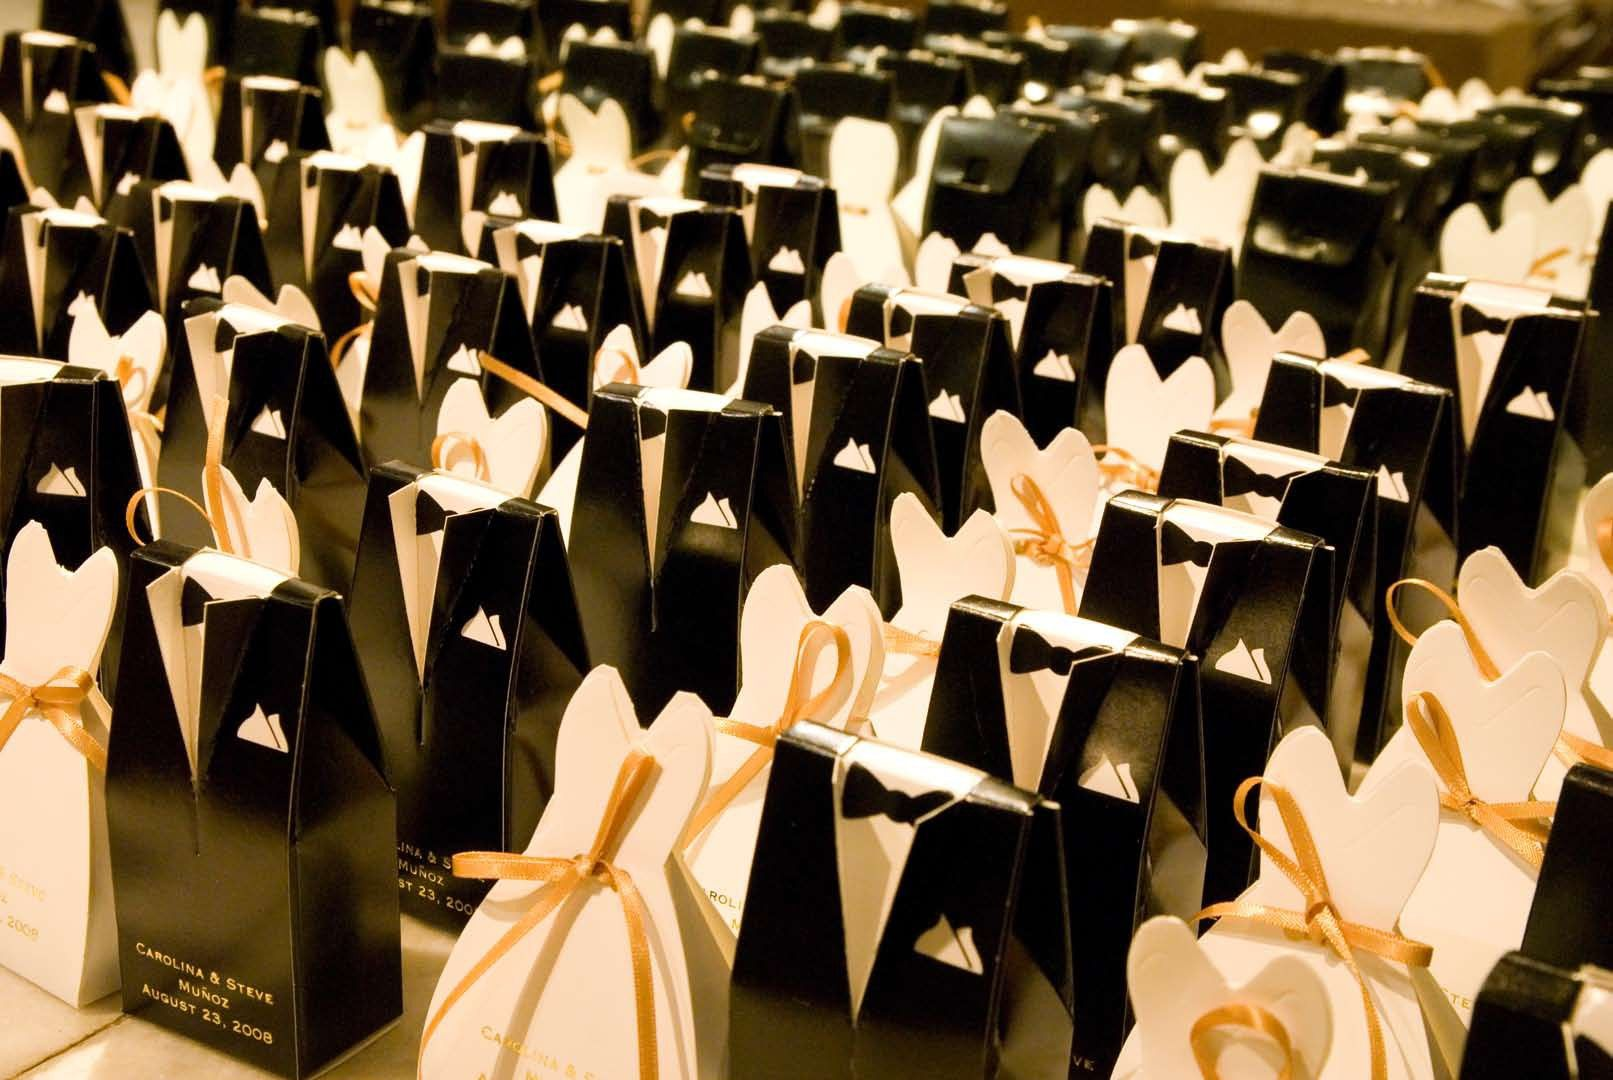 Wedding Take Home Gifts: Oooh! Do We Each Get To Take Home A Bride AND A Groom? If